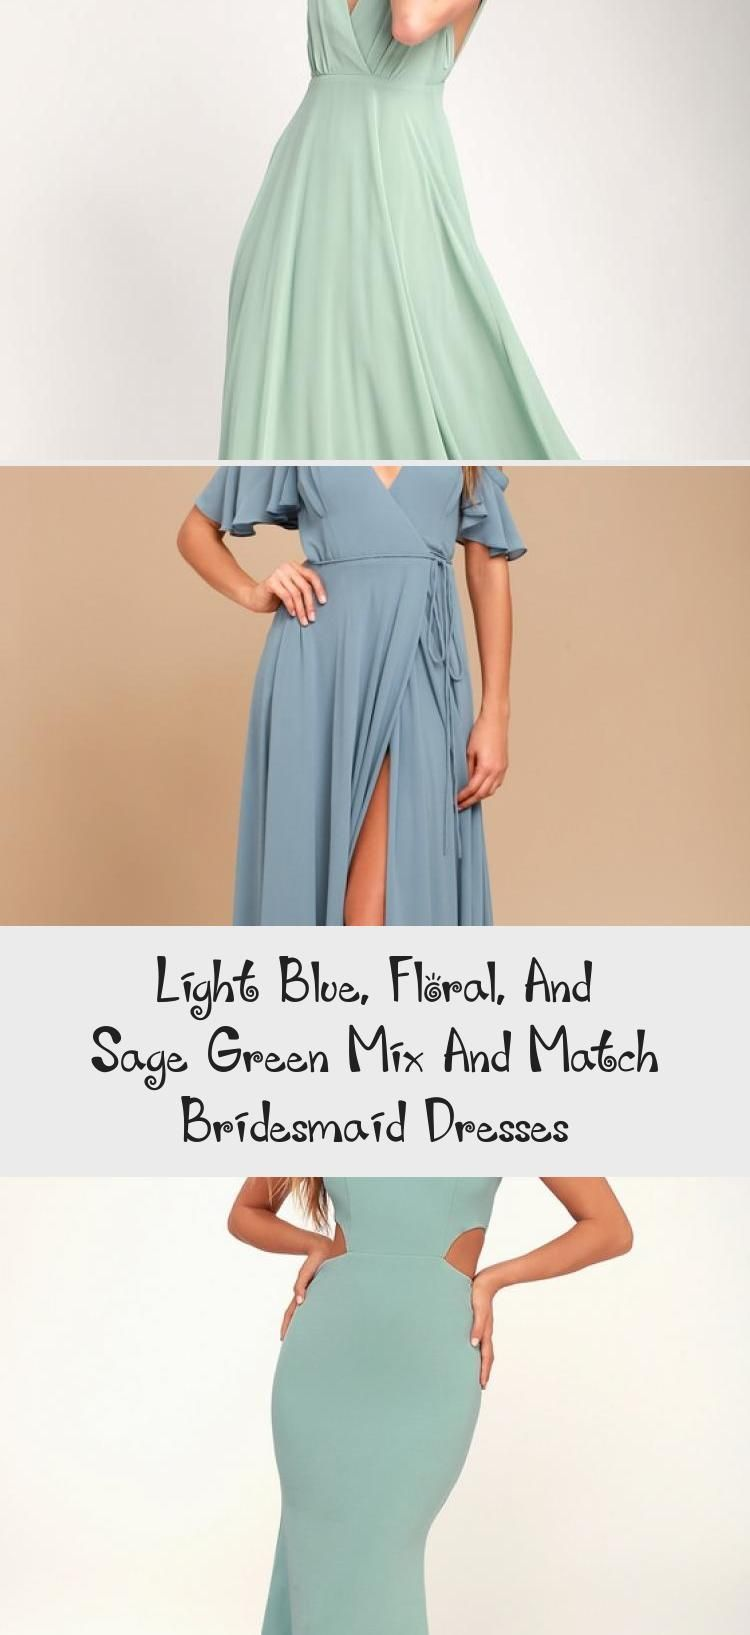 Blue floral and mist sage green mismatched bridesmaid dresses by Jenny Yoo #BridesmaidDressesBlue #BurgundyBridesmaidDresses #LilacBridesmaidDresses #ElegantBridesmaidDresses #BlackBridesmaidDresses #sagegreenbridesmaiddresses Blue floral and mist sage green mismatched bridesmaid dresses by Jenny Yoo #BridesmaidDressesBlue #BurgundyBridesmaidDresses #LilacBridesmaidDresses #ElegantBridesmaidDresses #BlackBridesmaidDresses #sagegreenbridesmaiddresses